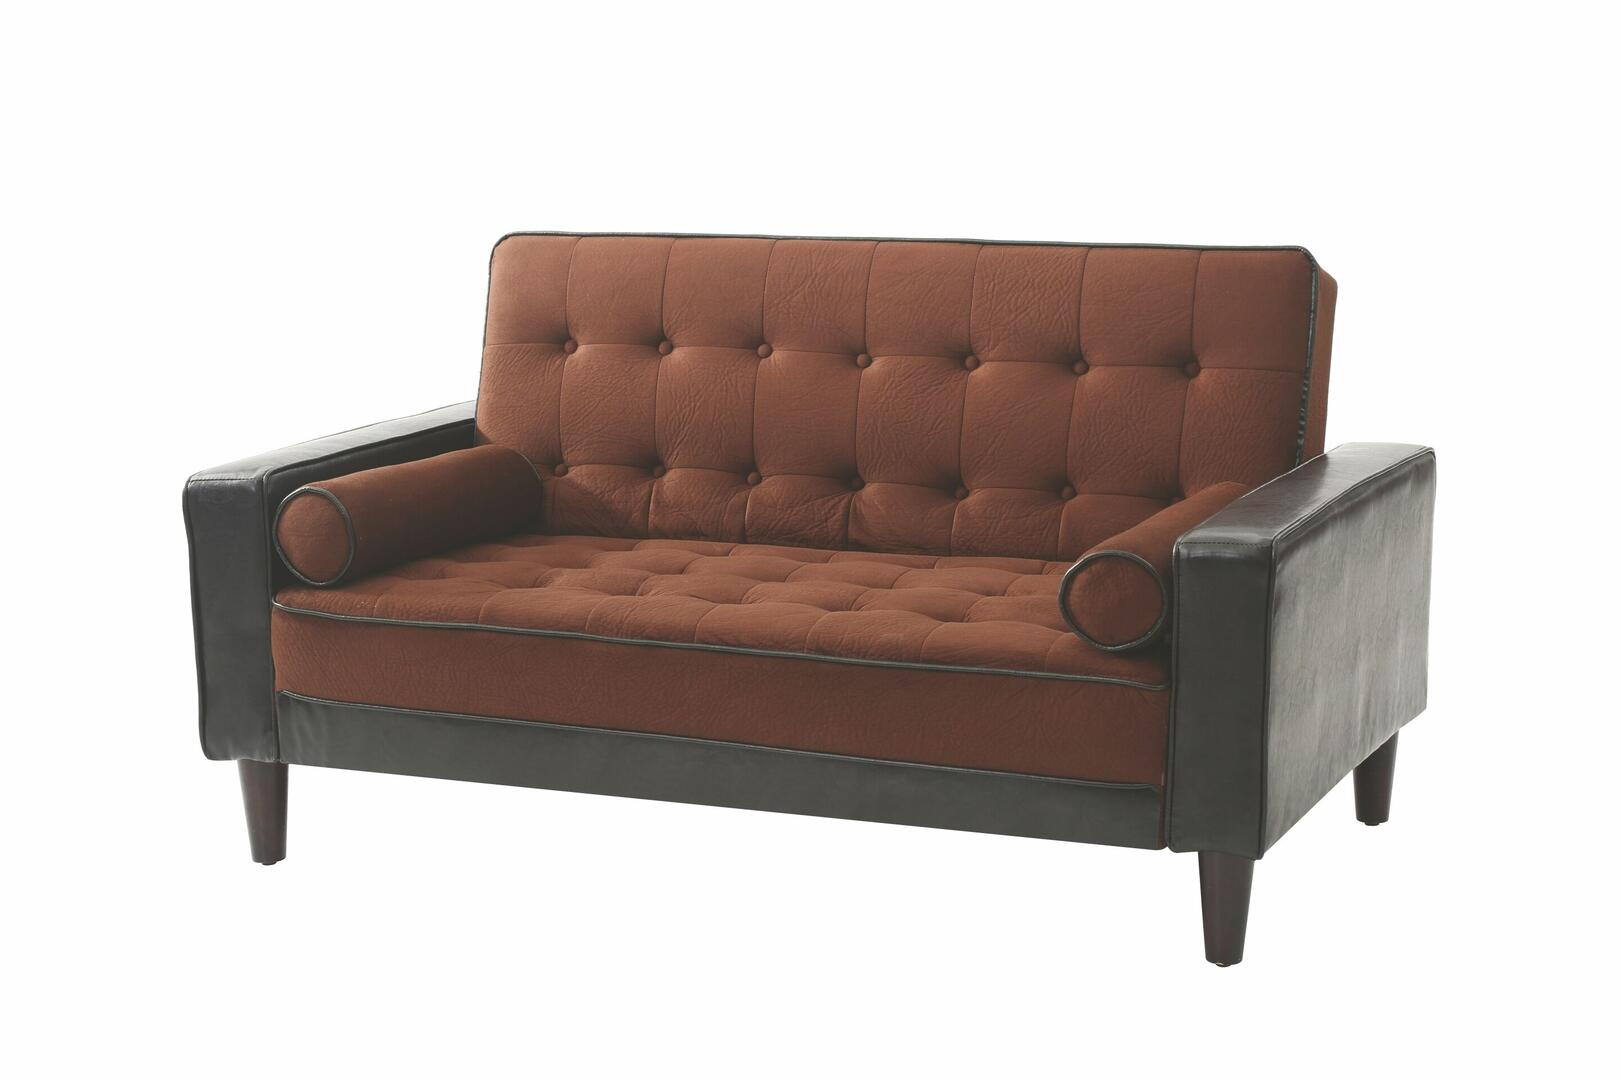 Glory furniture g846l g800 series faux leather convertible for Furniture 5 years no interest